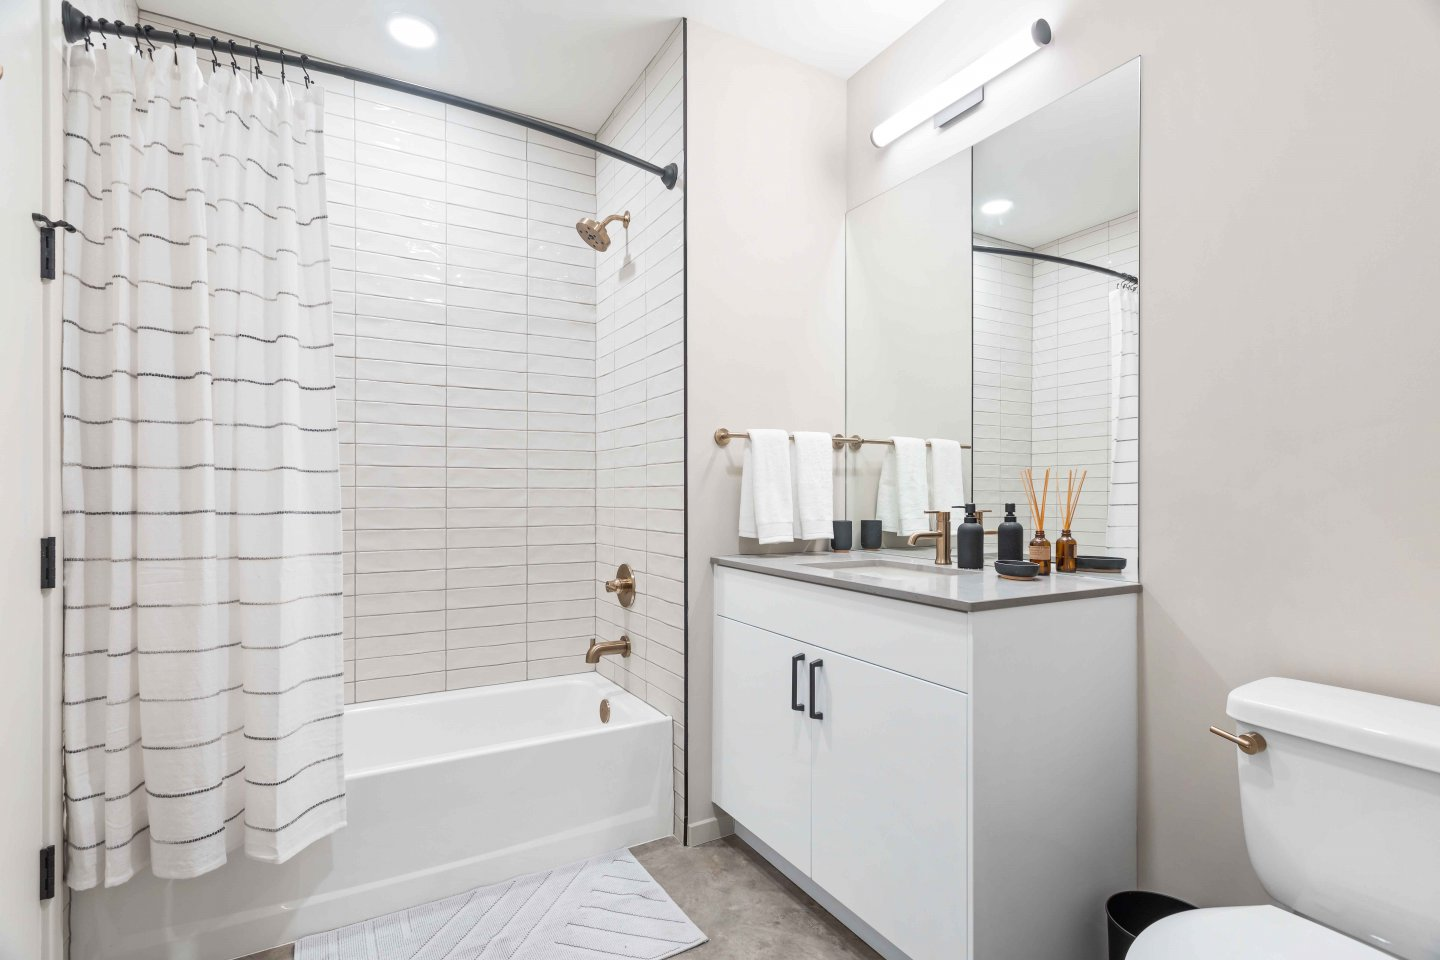 The Jax bathroom with white bathtub and tiles, white cabinets, and light grey single sink countertop